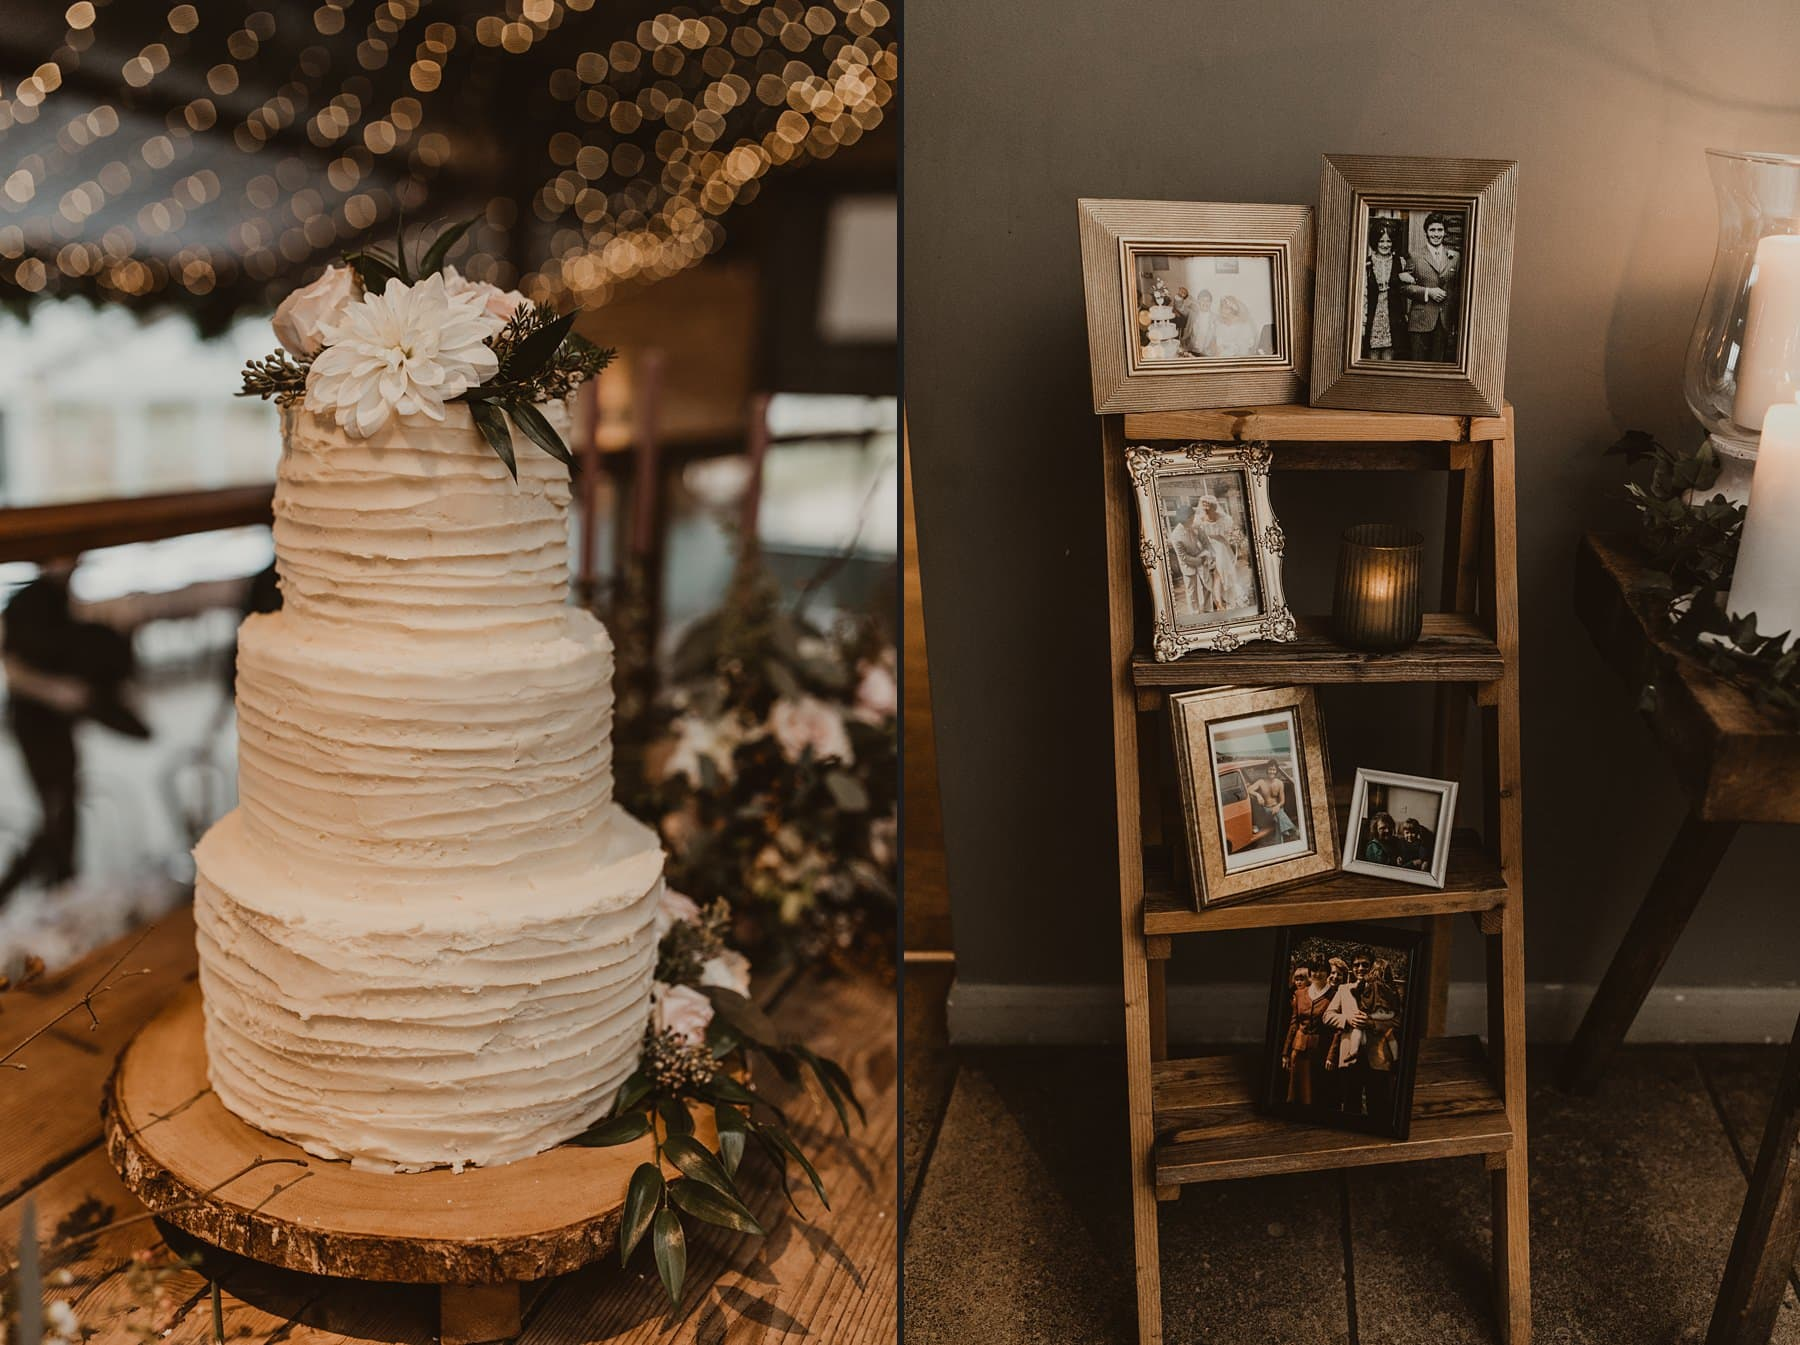 wedding cake and memory ladder